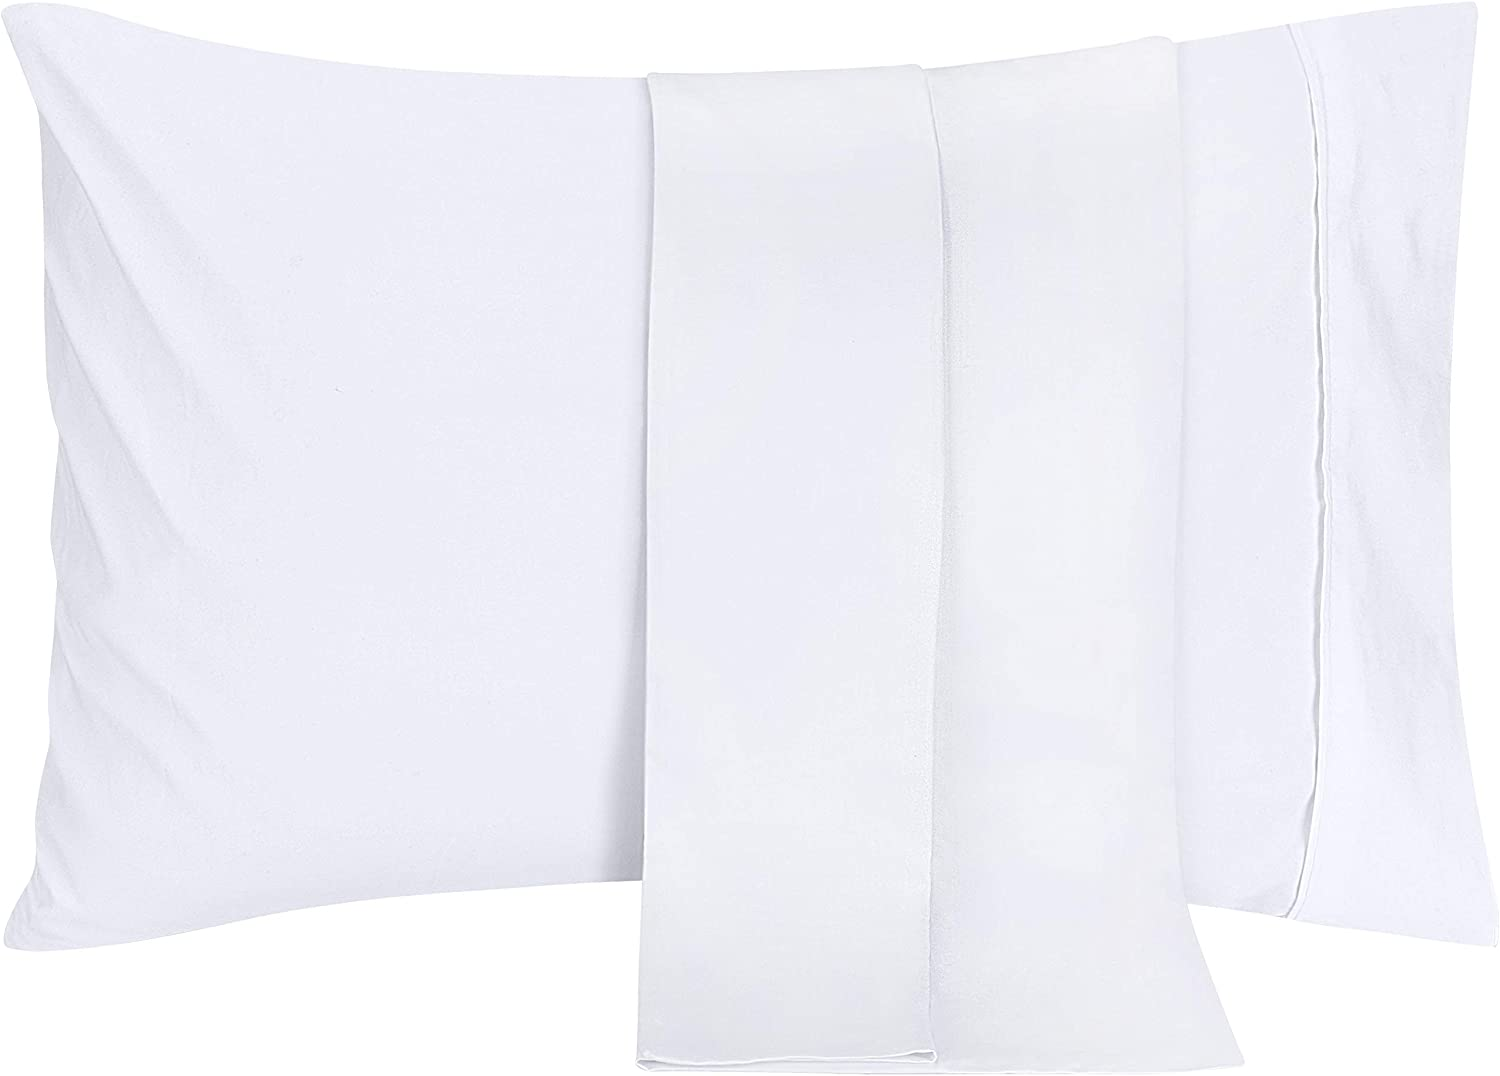 Utopia Bedding Brushed Microfiber Pillowcases – 20 by 40 inches Pillow Covers (Pack of 2, King, White)